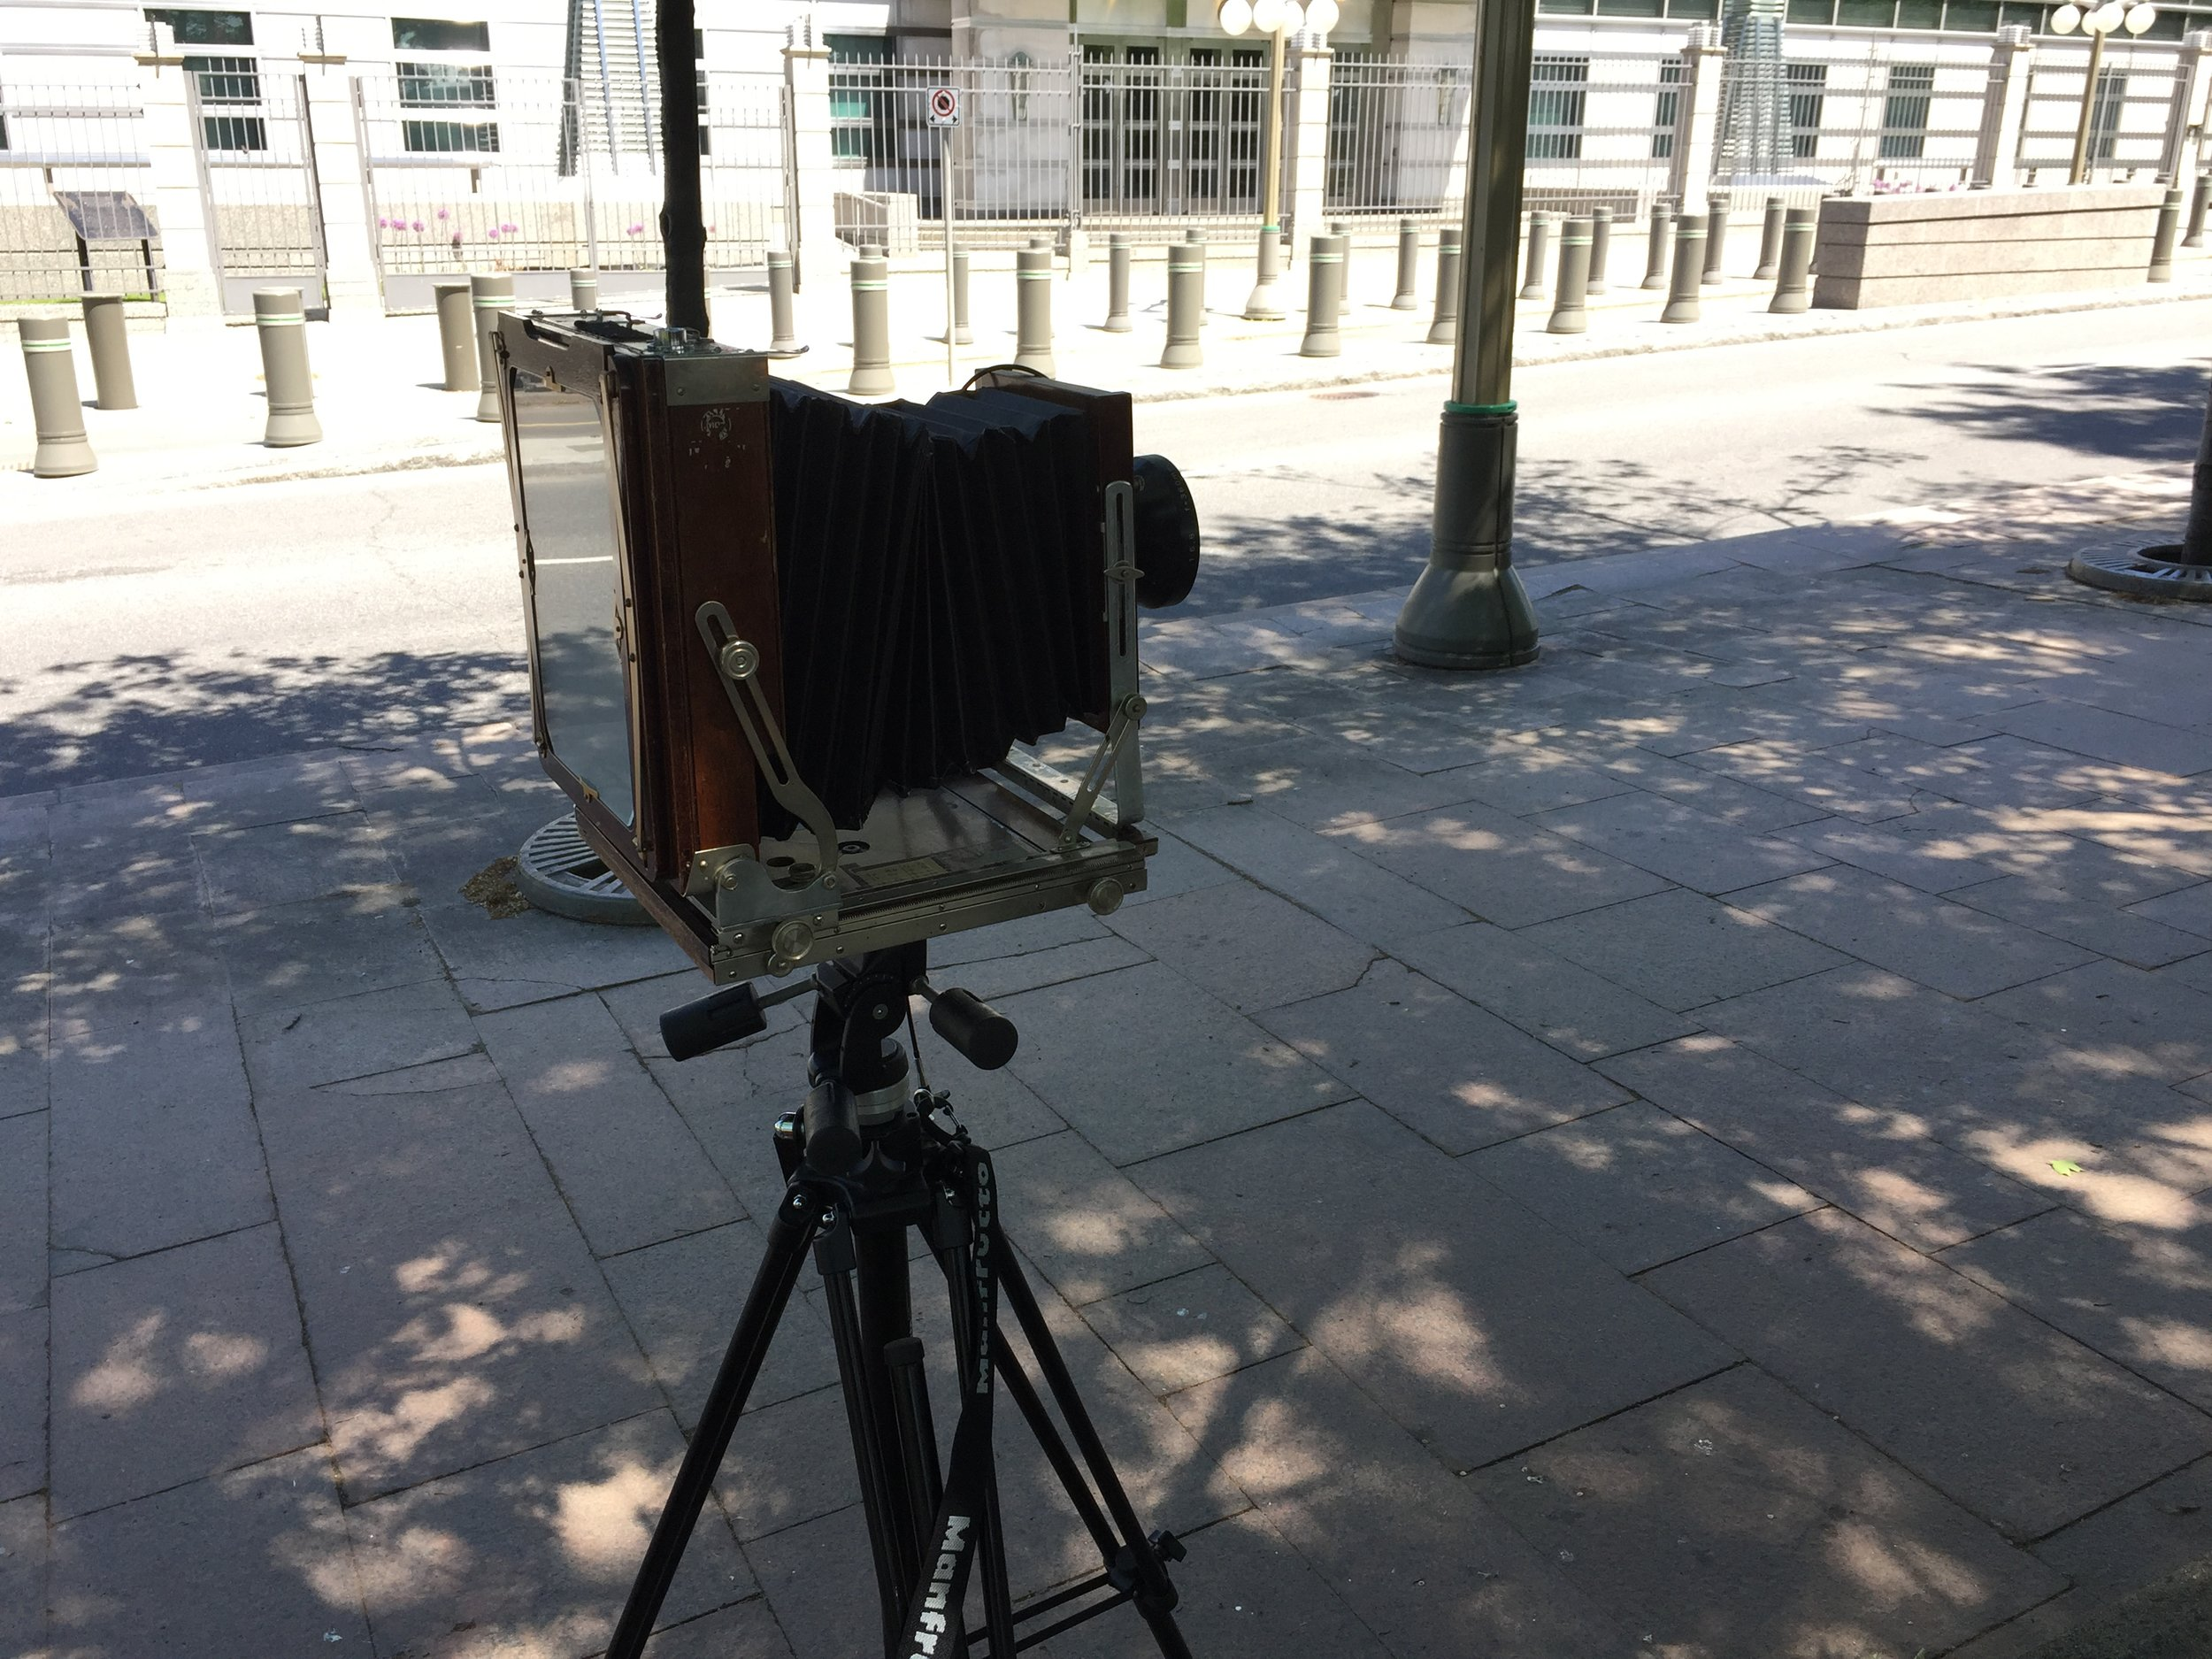 Figure 3: 8x10 Camera Setup (Source: Machinski, 2018).